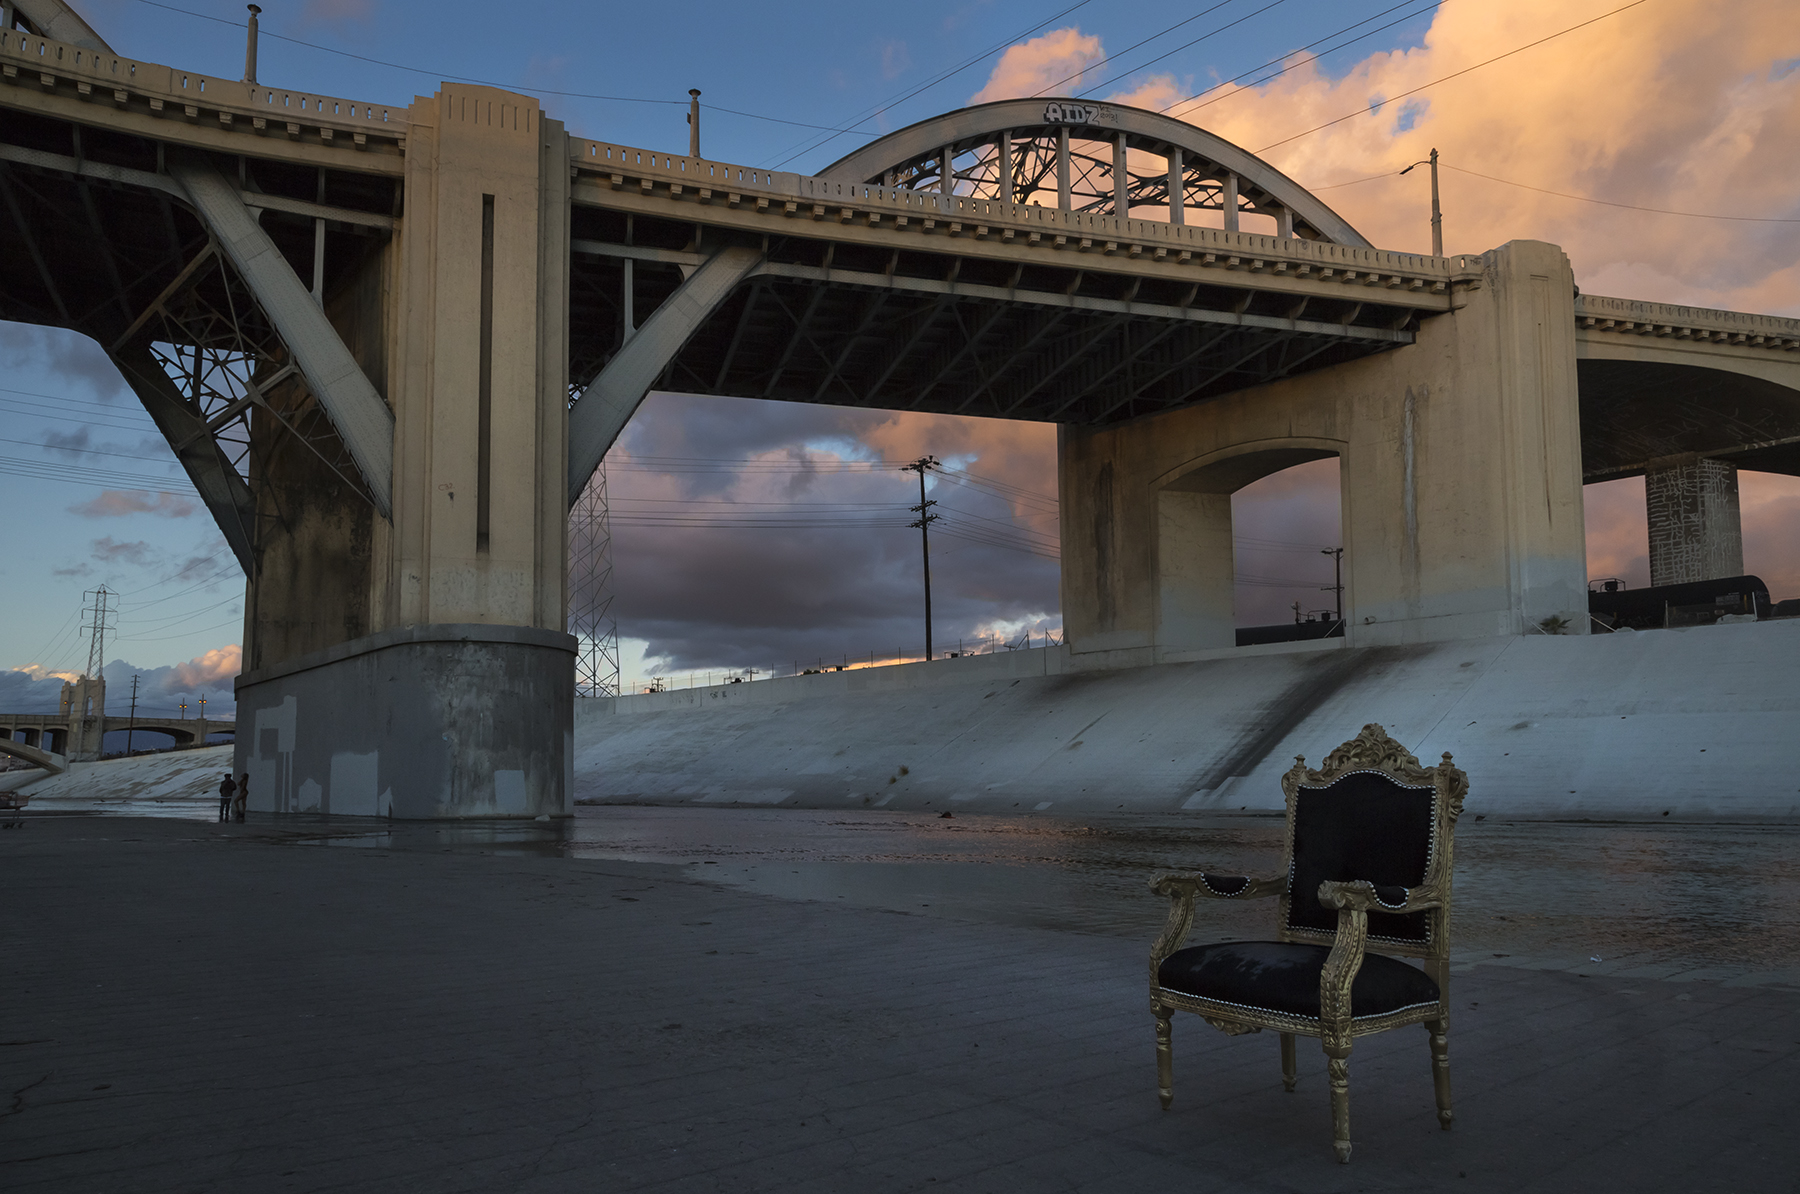 6th Street Viaduct - from LA Riverbed, 2015.11.15.04